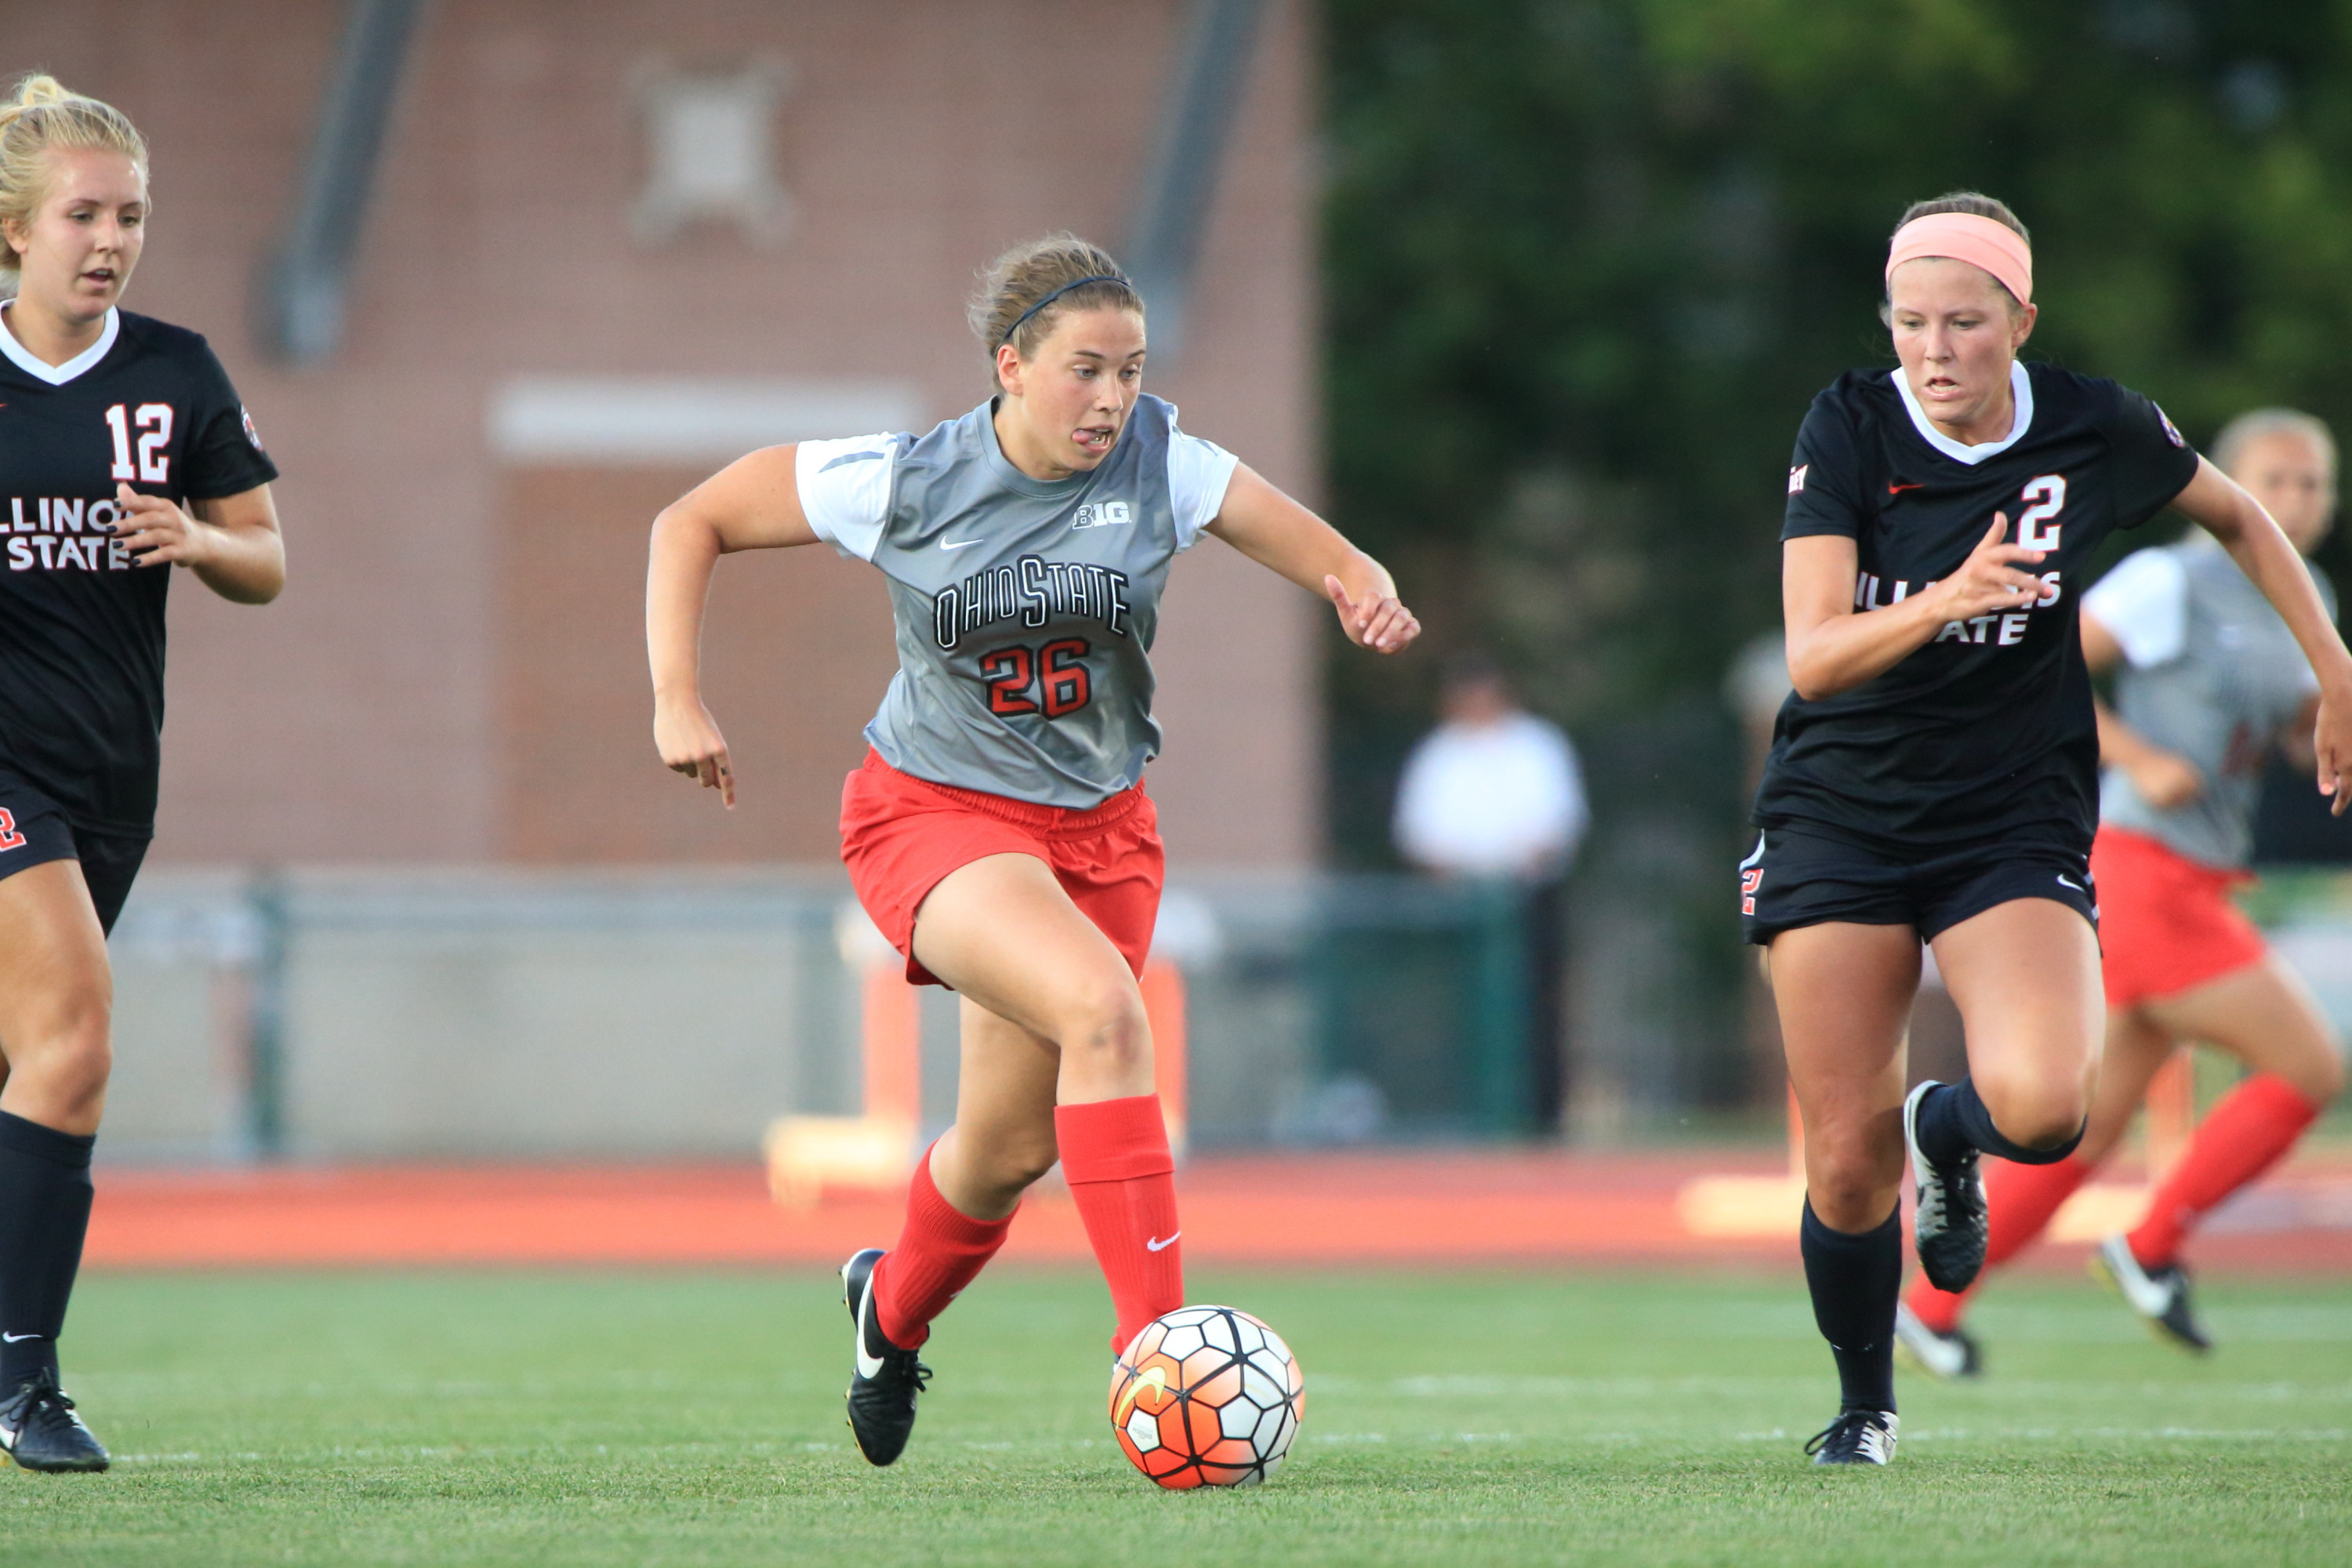 The Ohio State University women's Soccer team defeat Illinois State University 6-2 in their home opener for the 2015 season. Jesse Owens Memorial Stadium, Columbus, OH. August 21, 2015  Sydney Dudley (26)